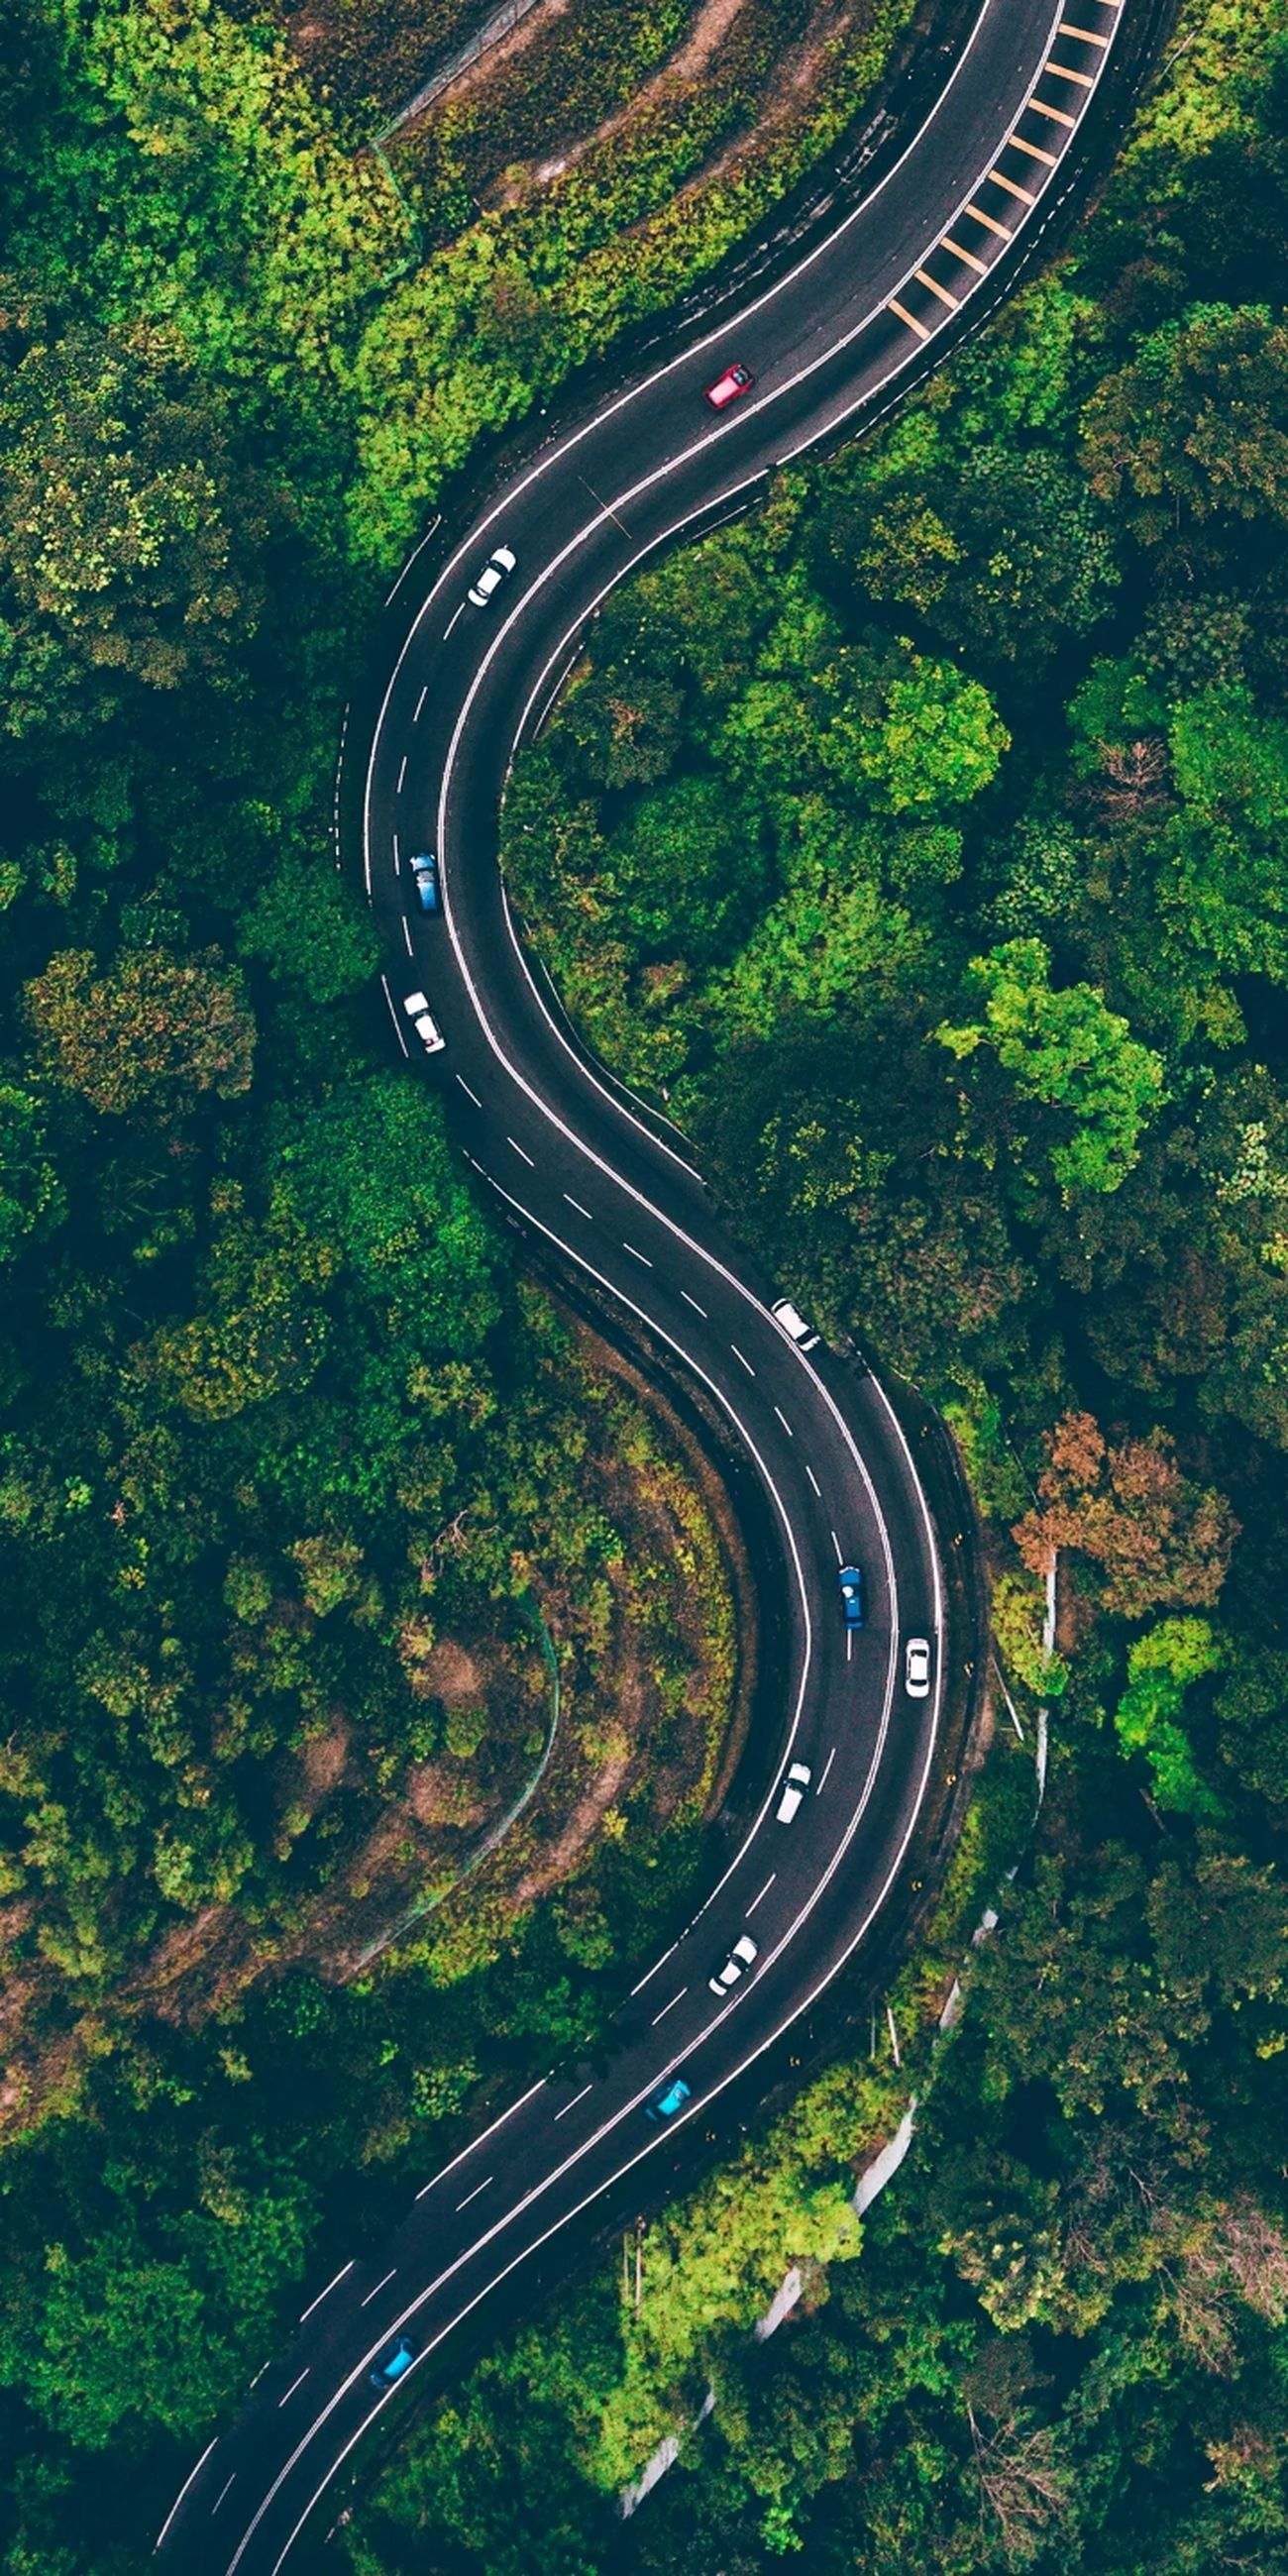 transportation, road, curve, plant, tree, high angle view, mode of transportation, nature, no people, highway, aerial view, day, street, land vehicle, marking, road marking, green color, land, motion, growth, outdoors, multiple lane highway